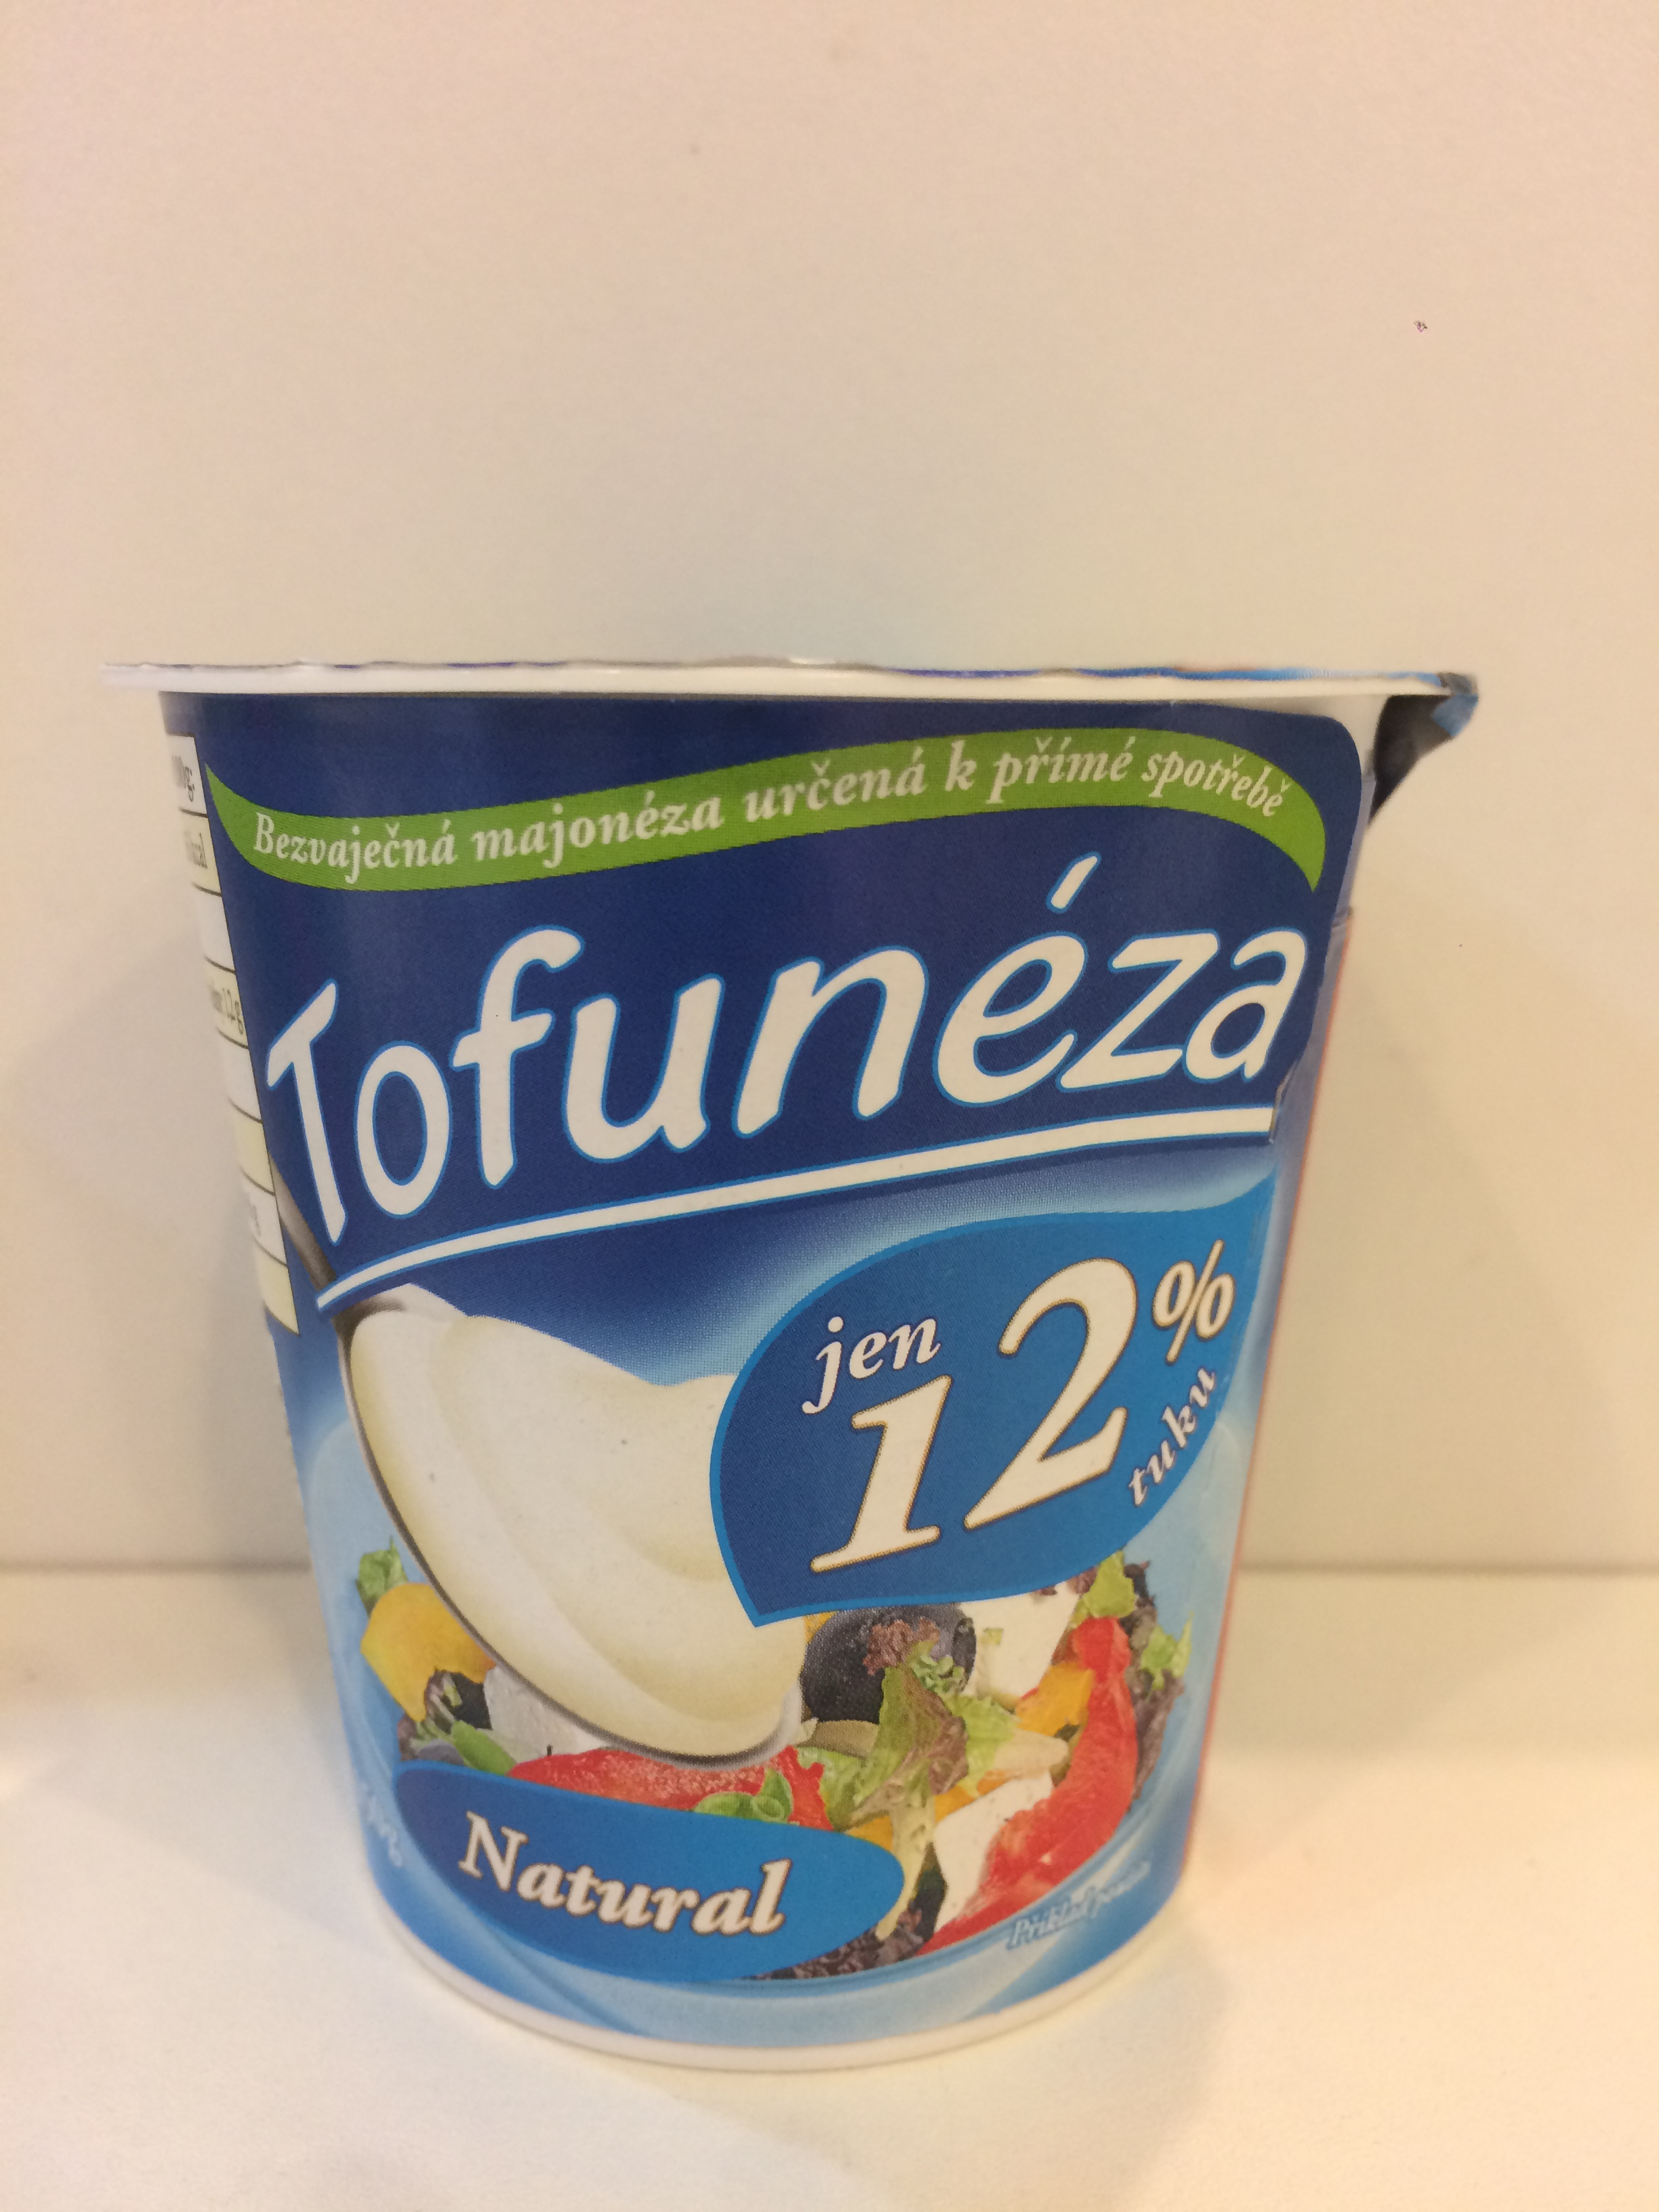 Tofunéza natural 150g